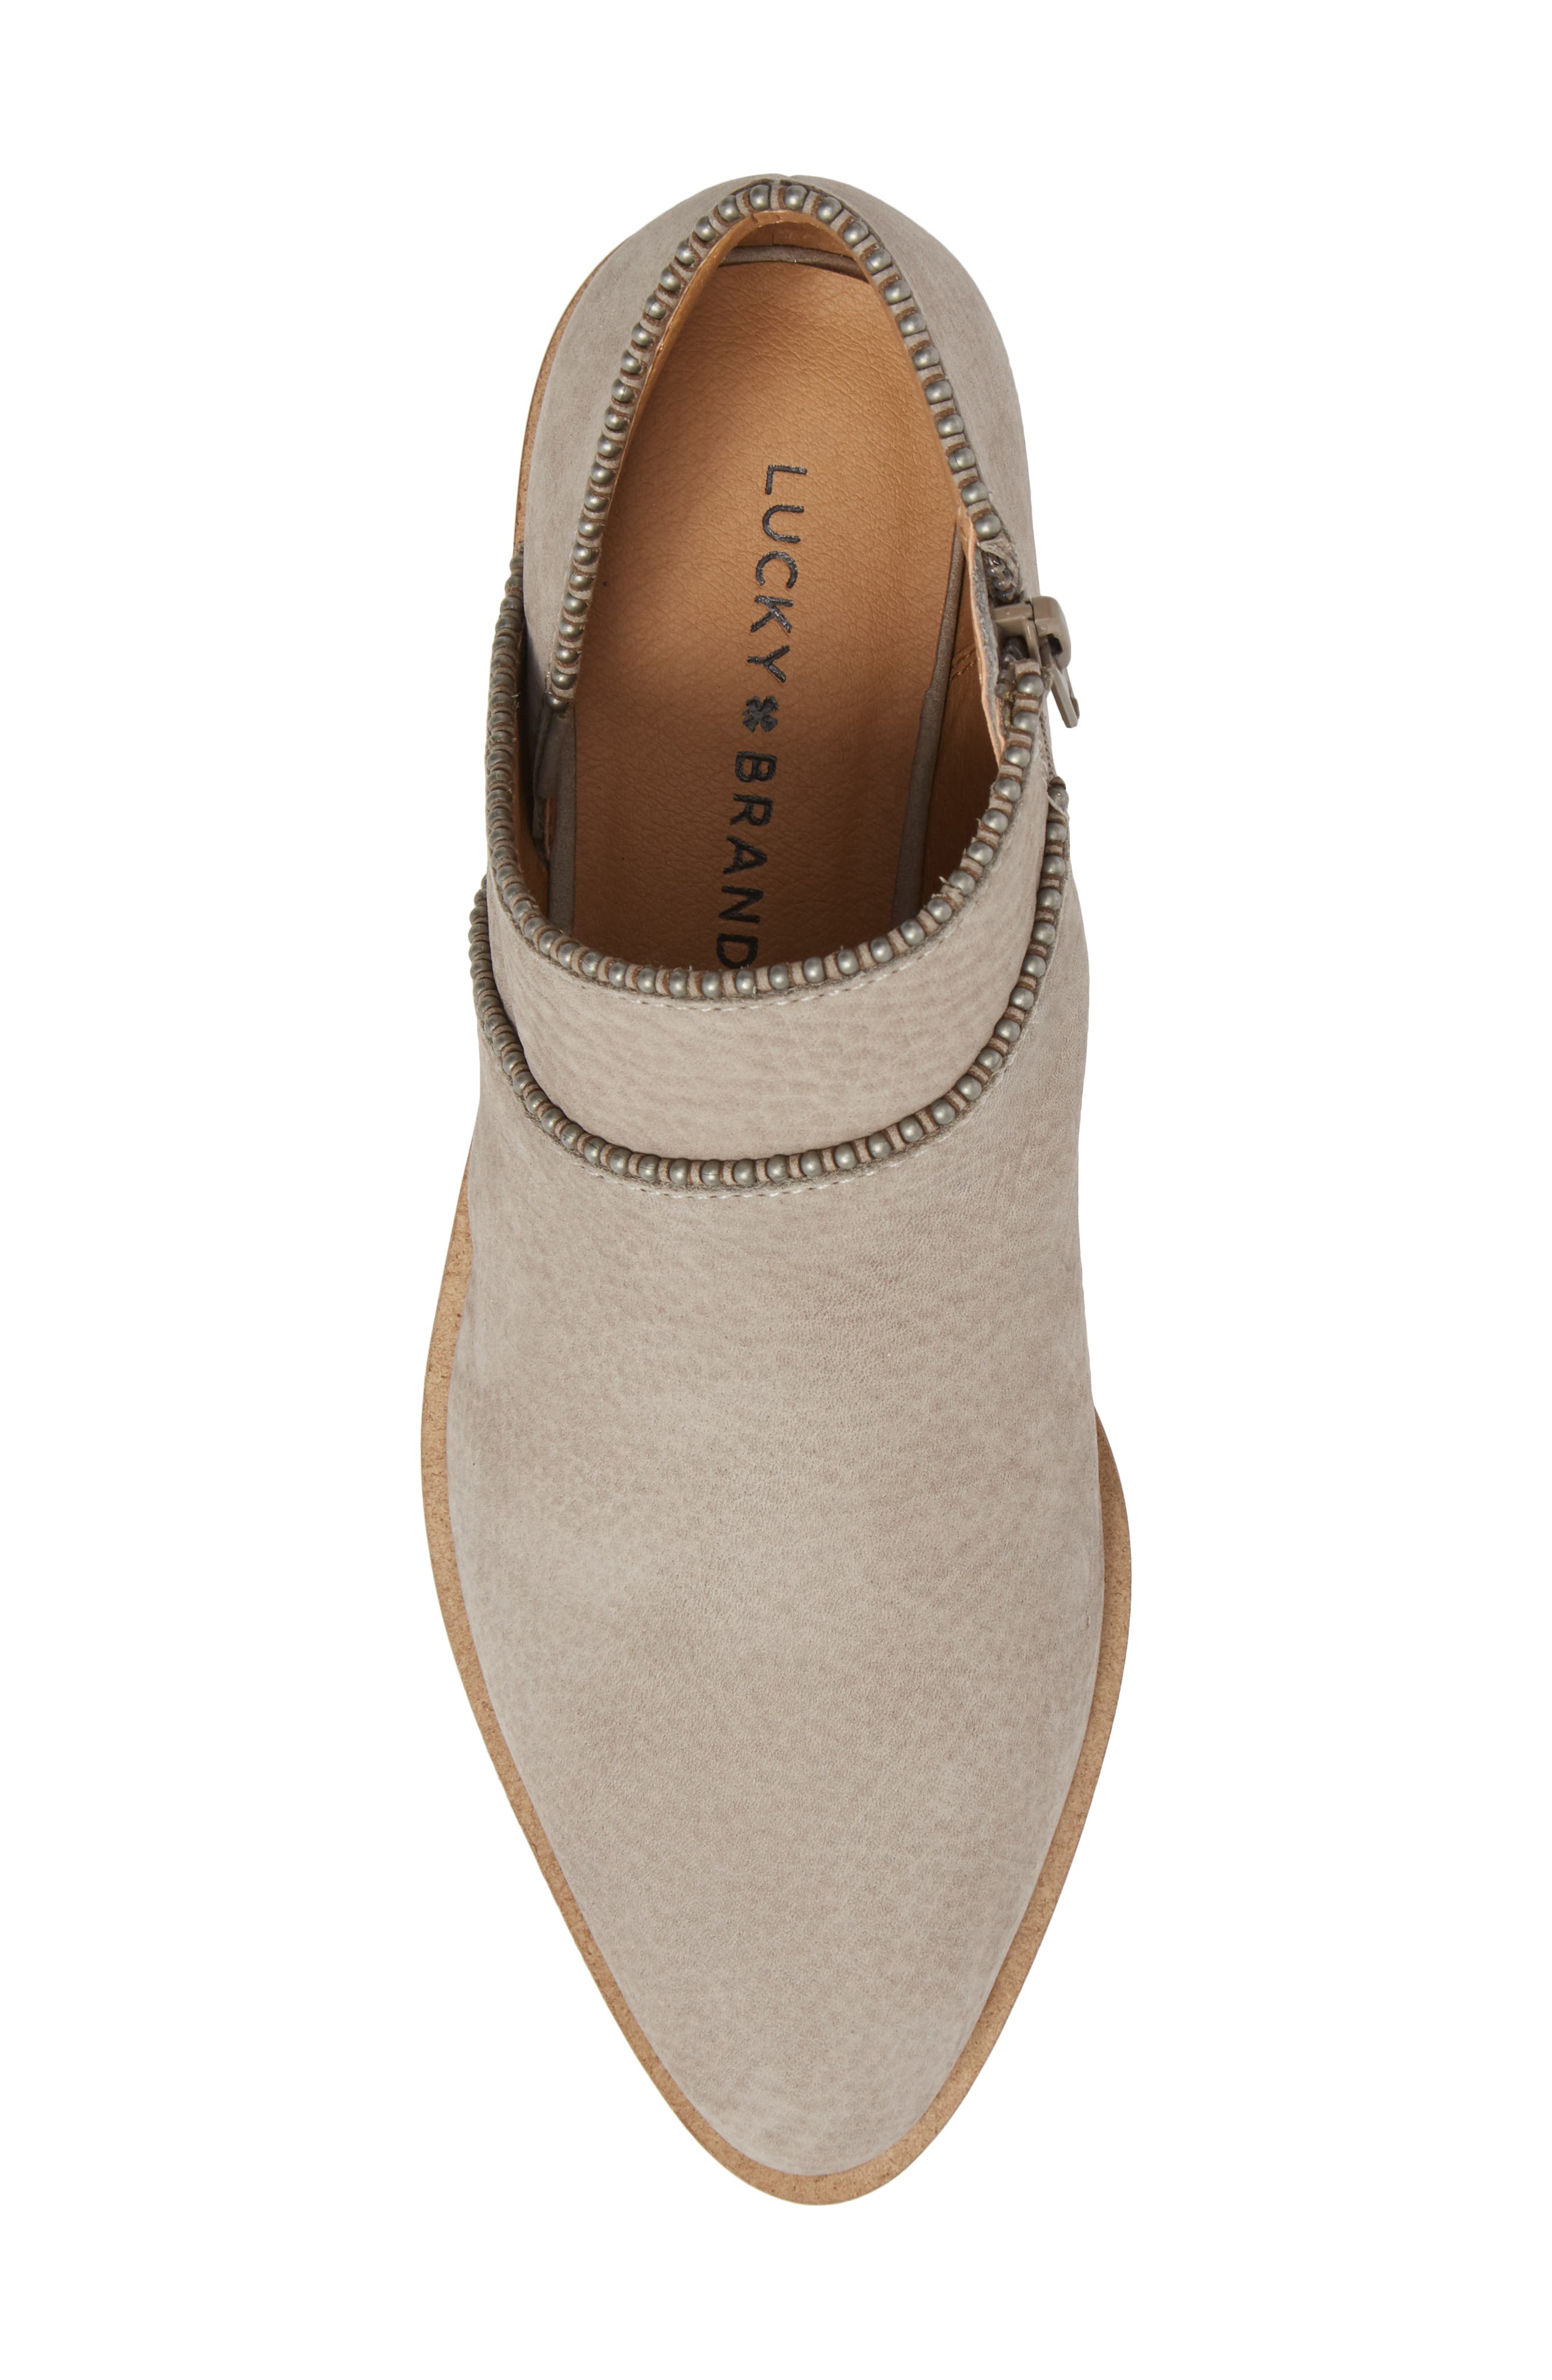 LUCKY BRAND,                             Perrma Bootie,                             Alternate thumbnail 5, color,                             060